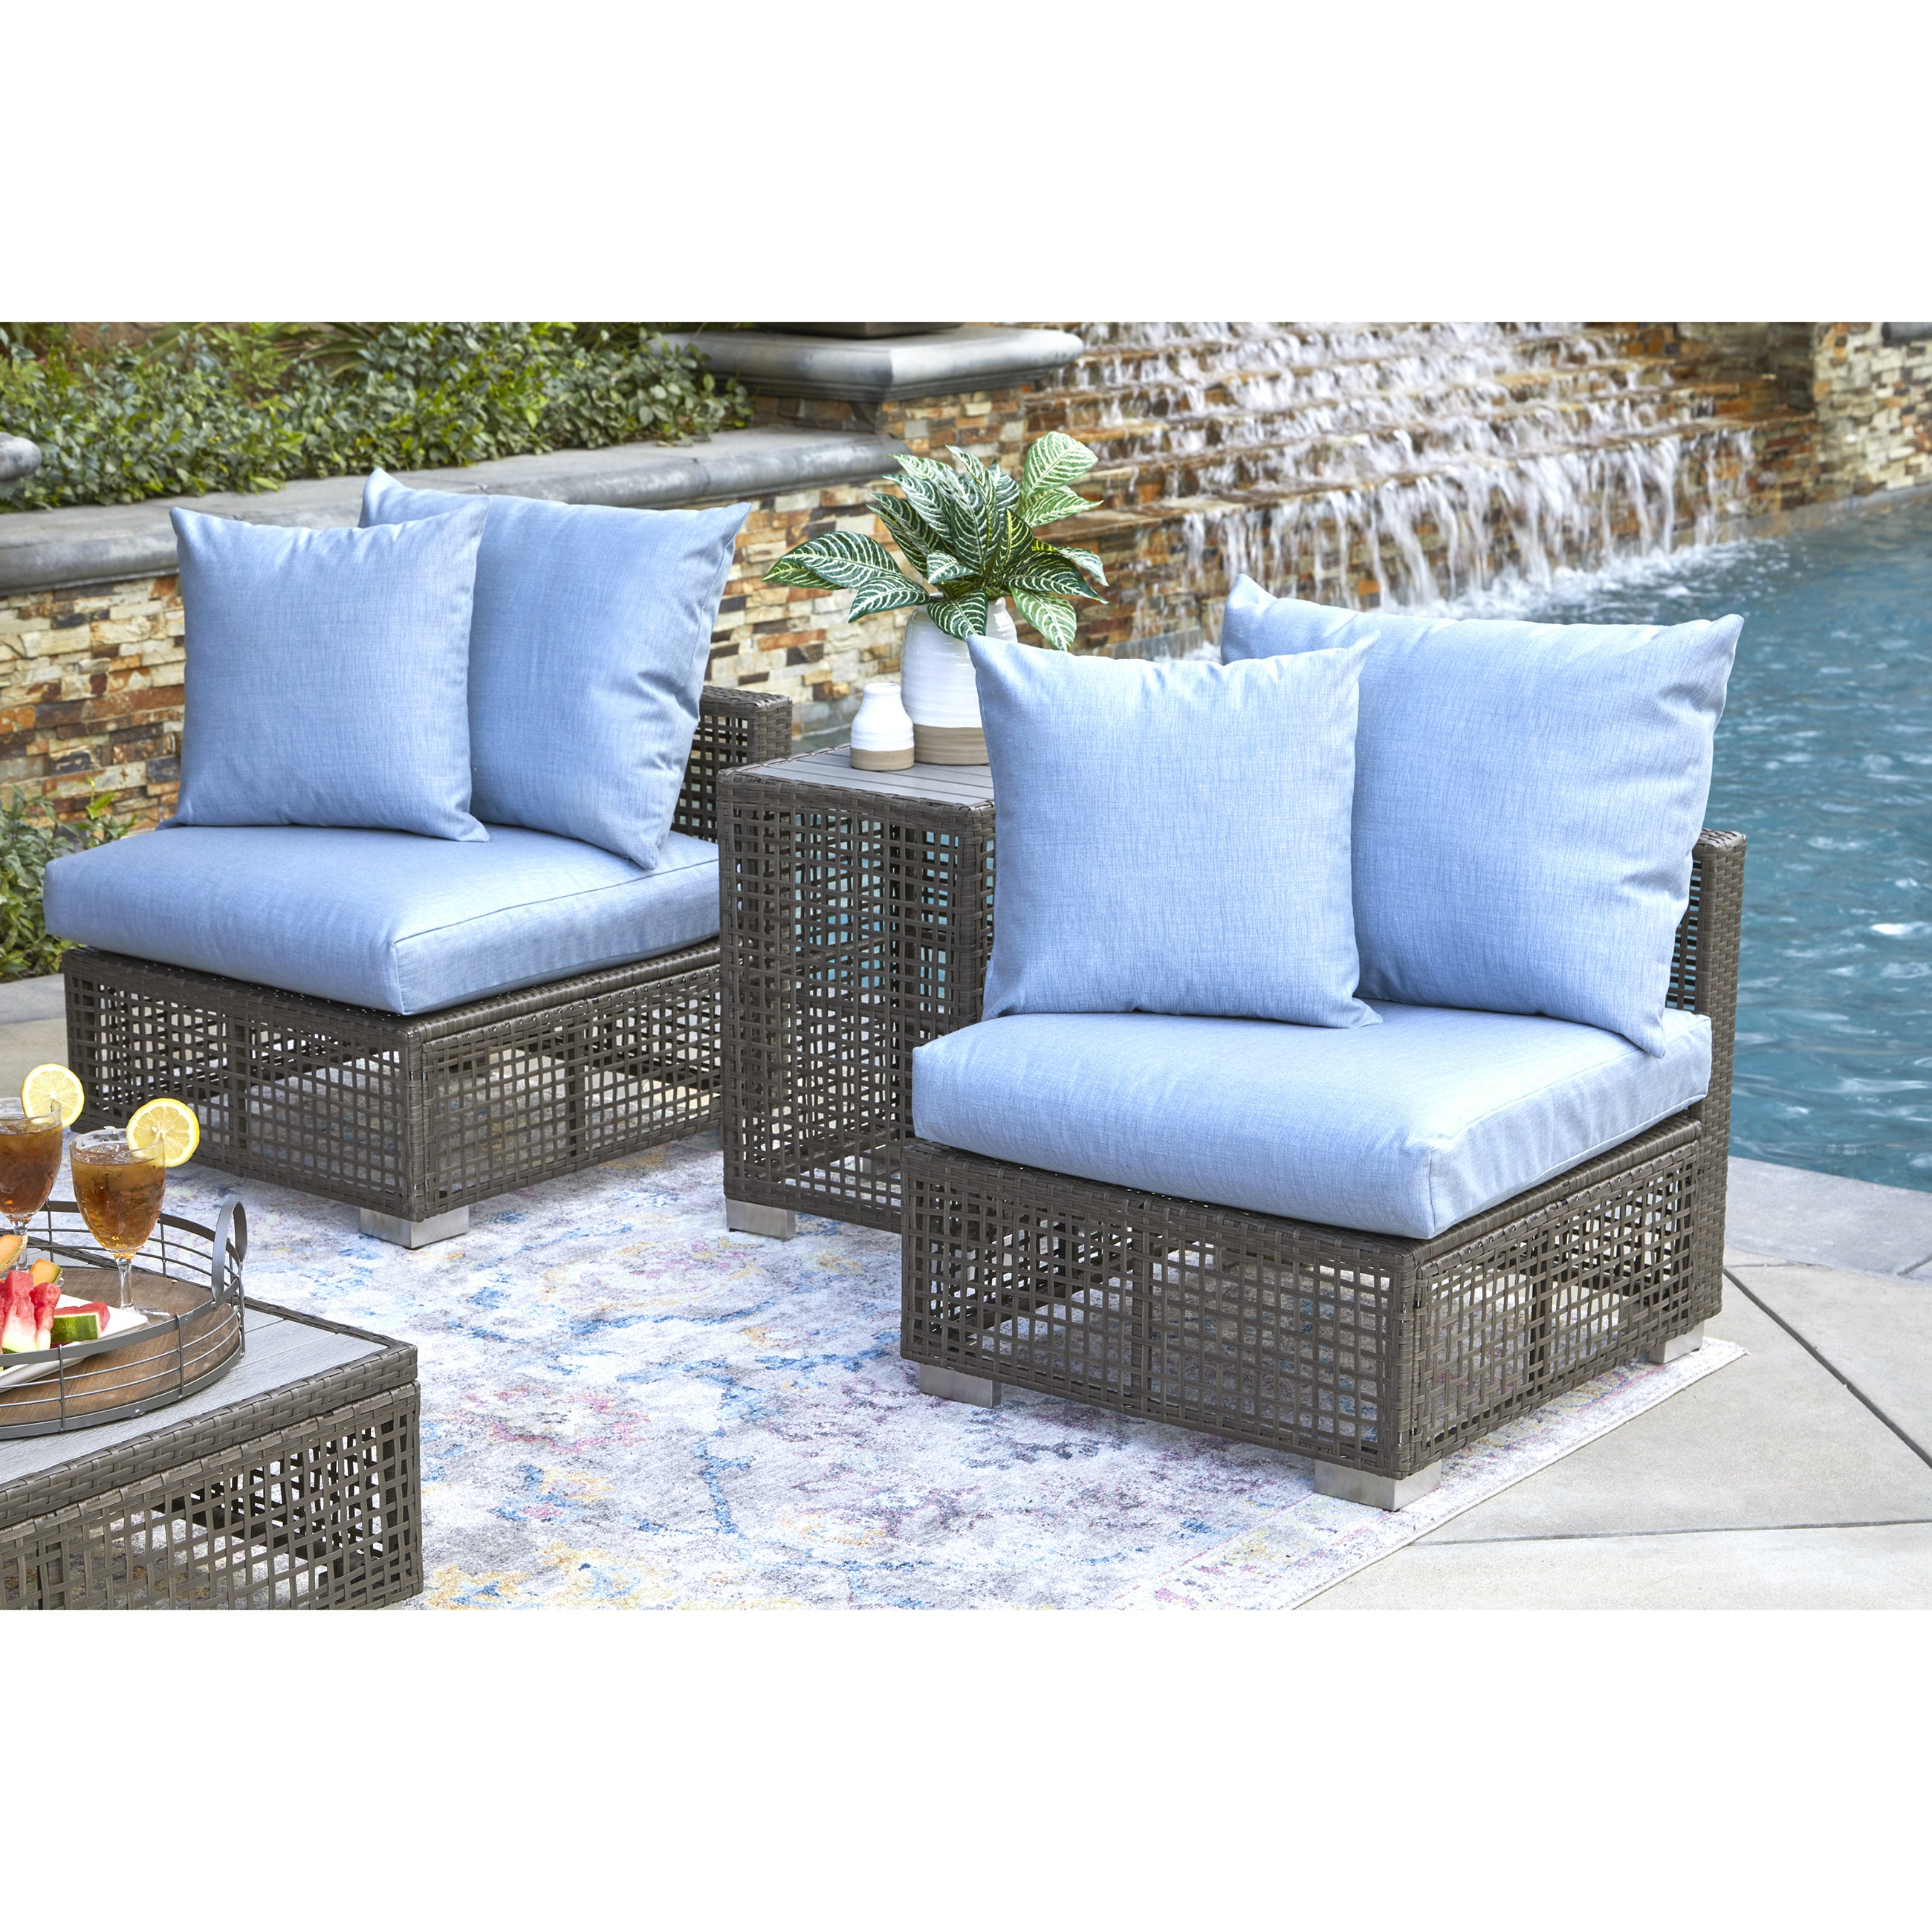 Handy living aldrich outdoor gray open weave rattan armless chair with sunbelievable sky blue cushions